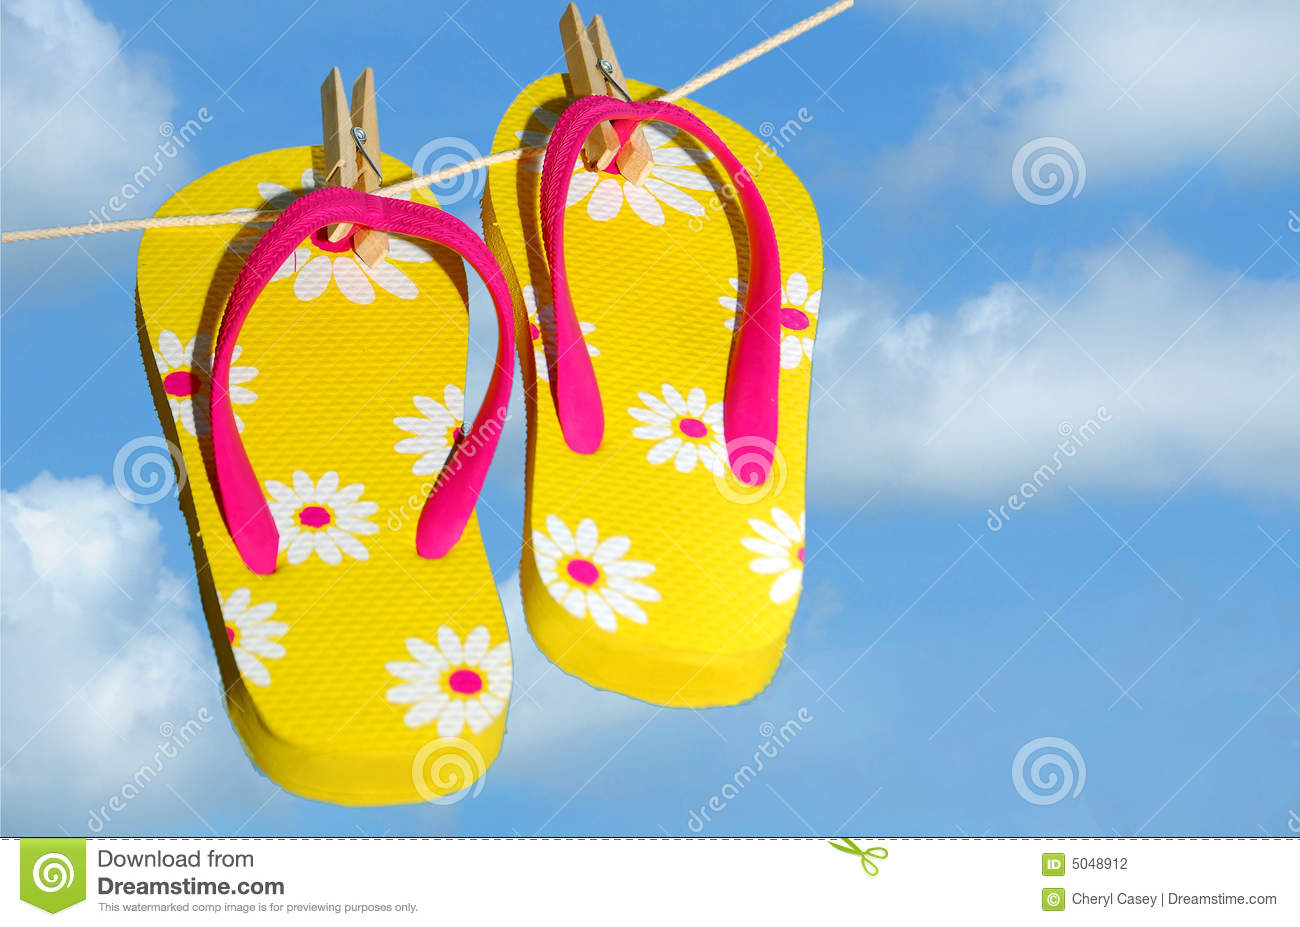 Flip Flops Drying on Line